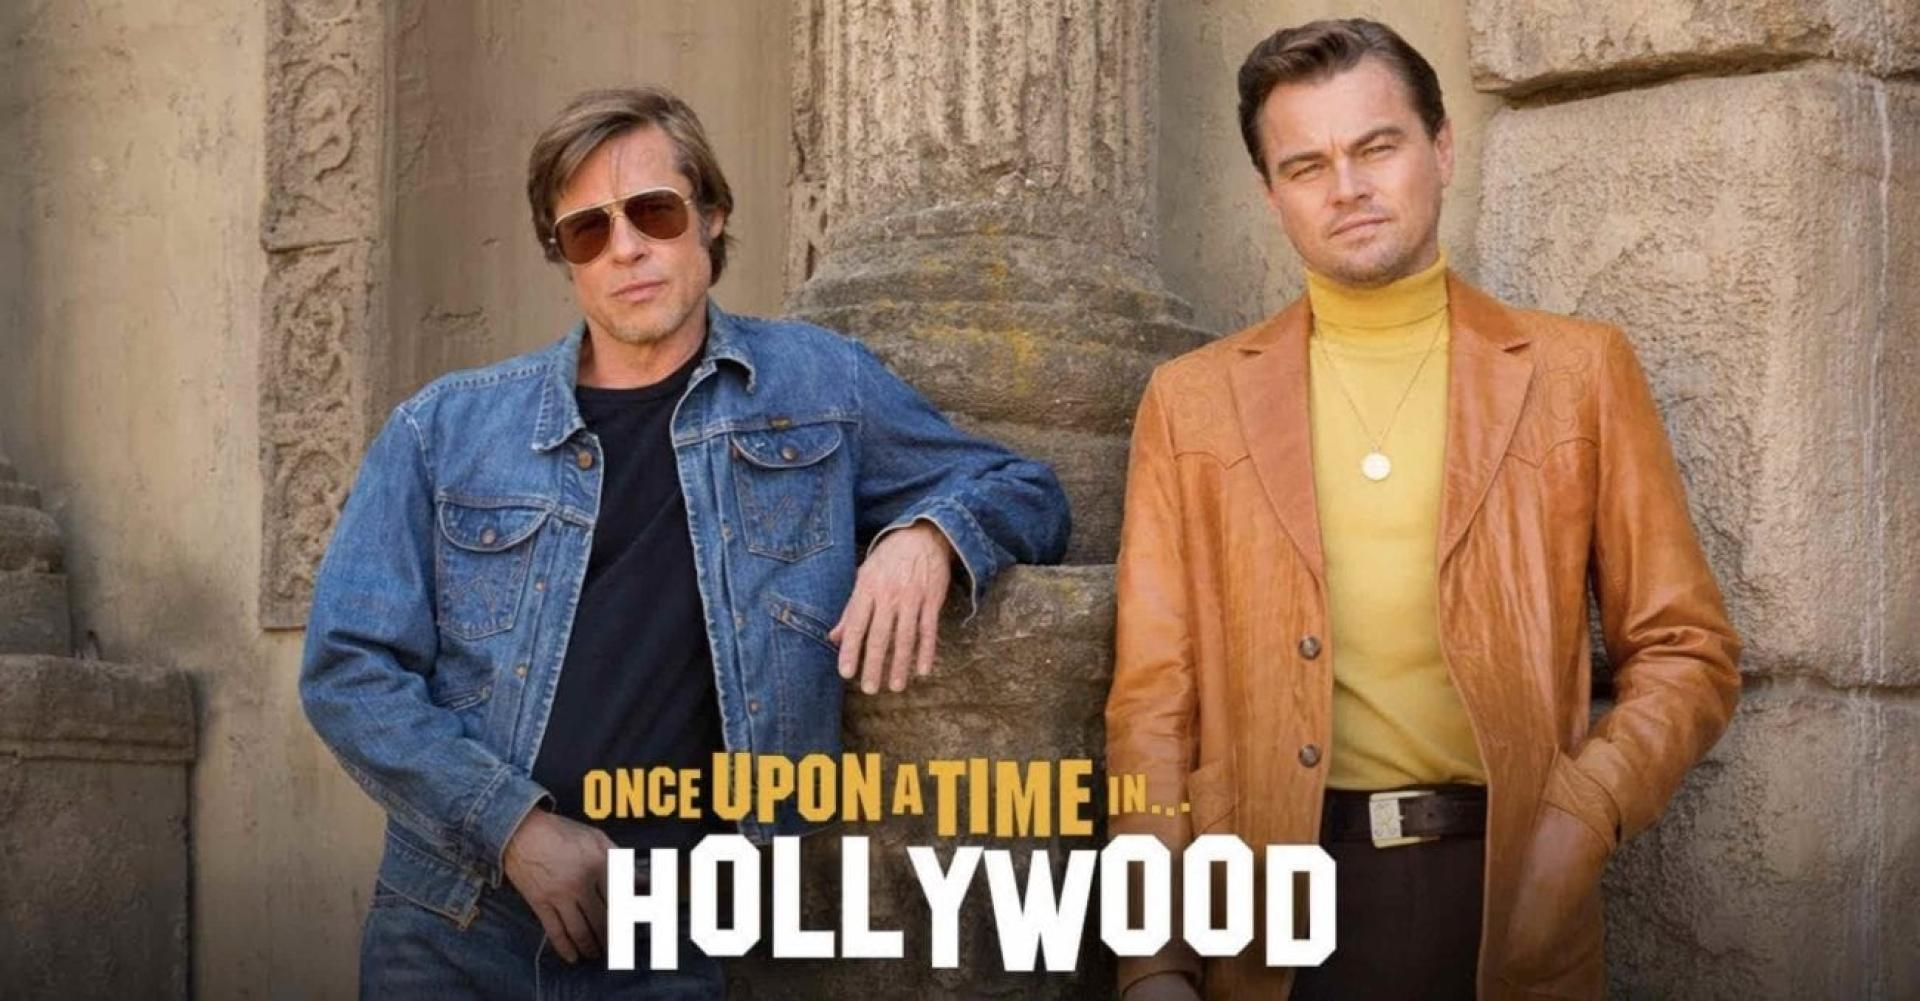 Once Upon a Time... in Hollywood / Volt egyszer egy... Hollywood (2019)